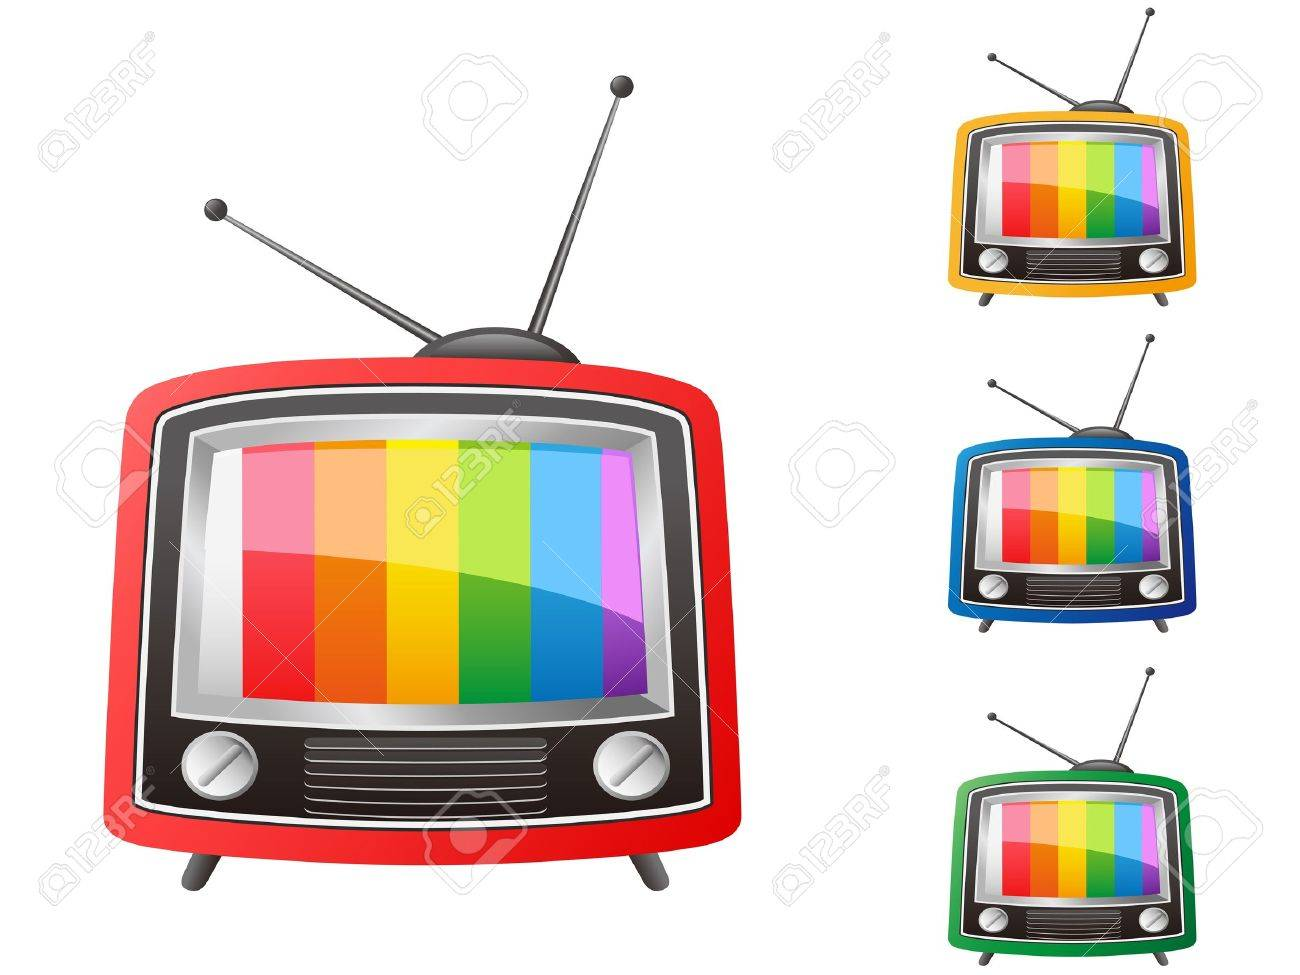 isolated color retro tv on white background Stock Vector - 13121516